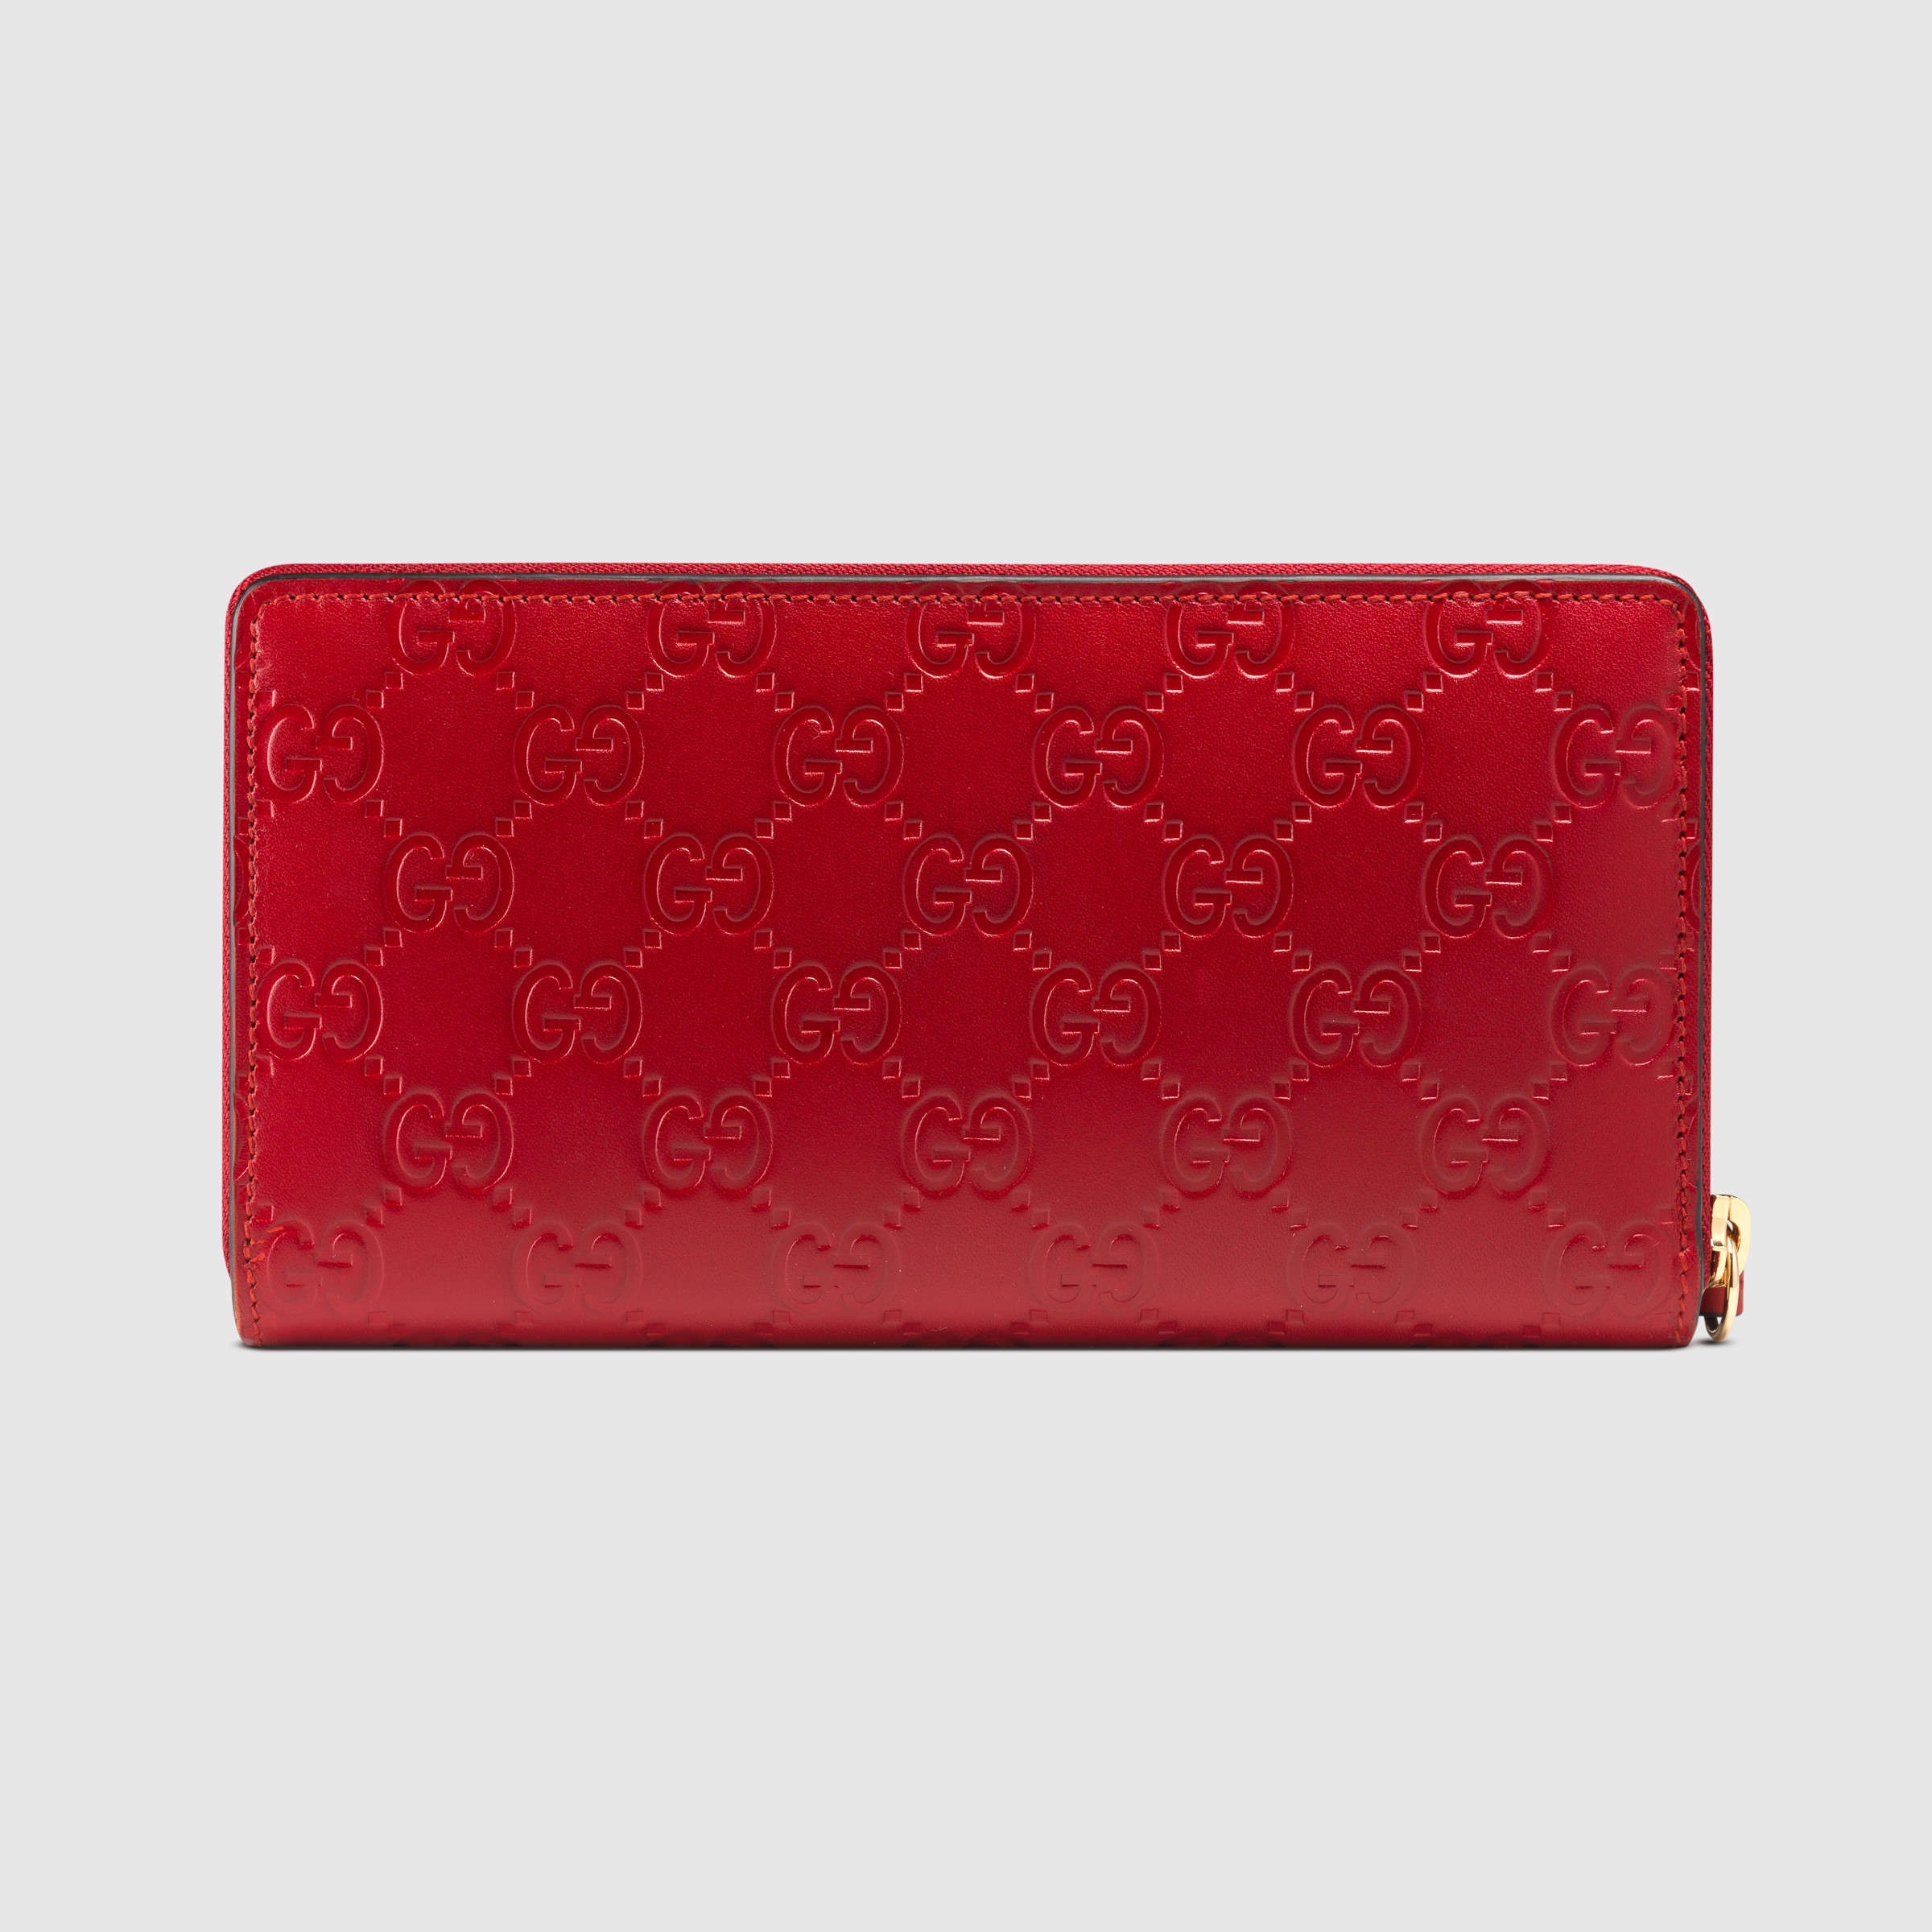 【グッチ】Gucci Signature Zip Around Wallet 長財布